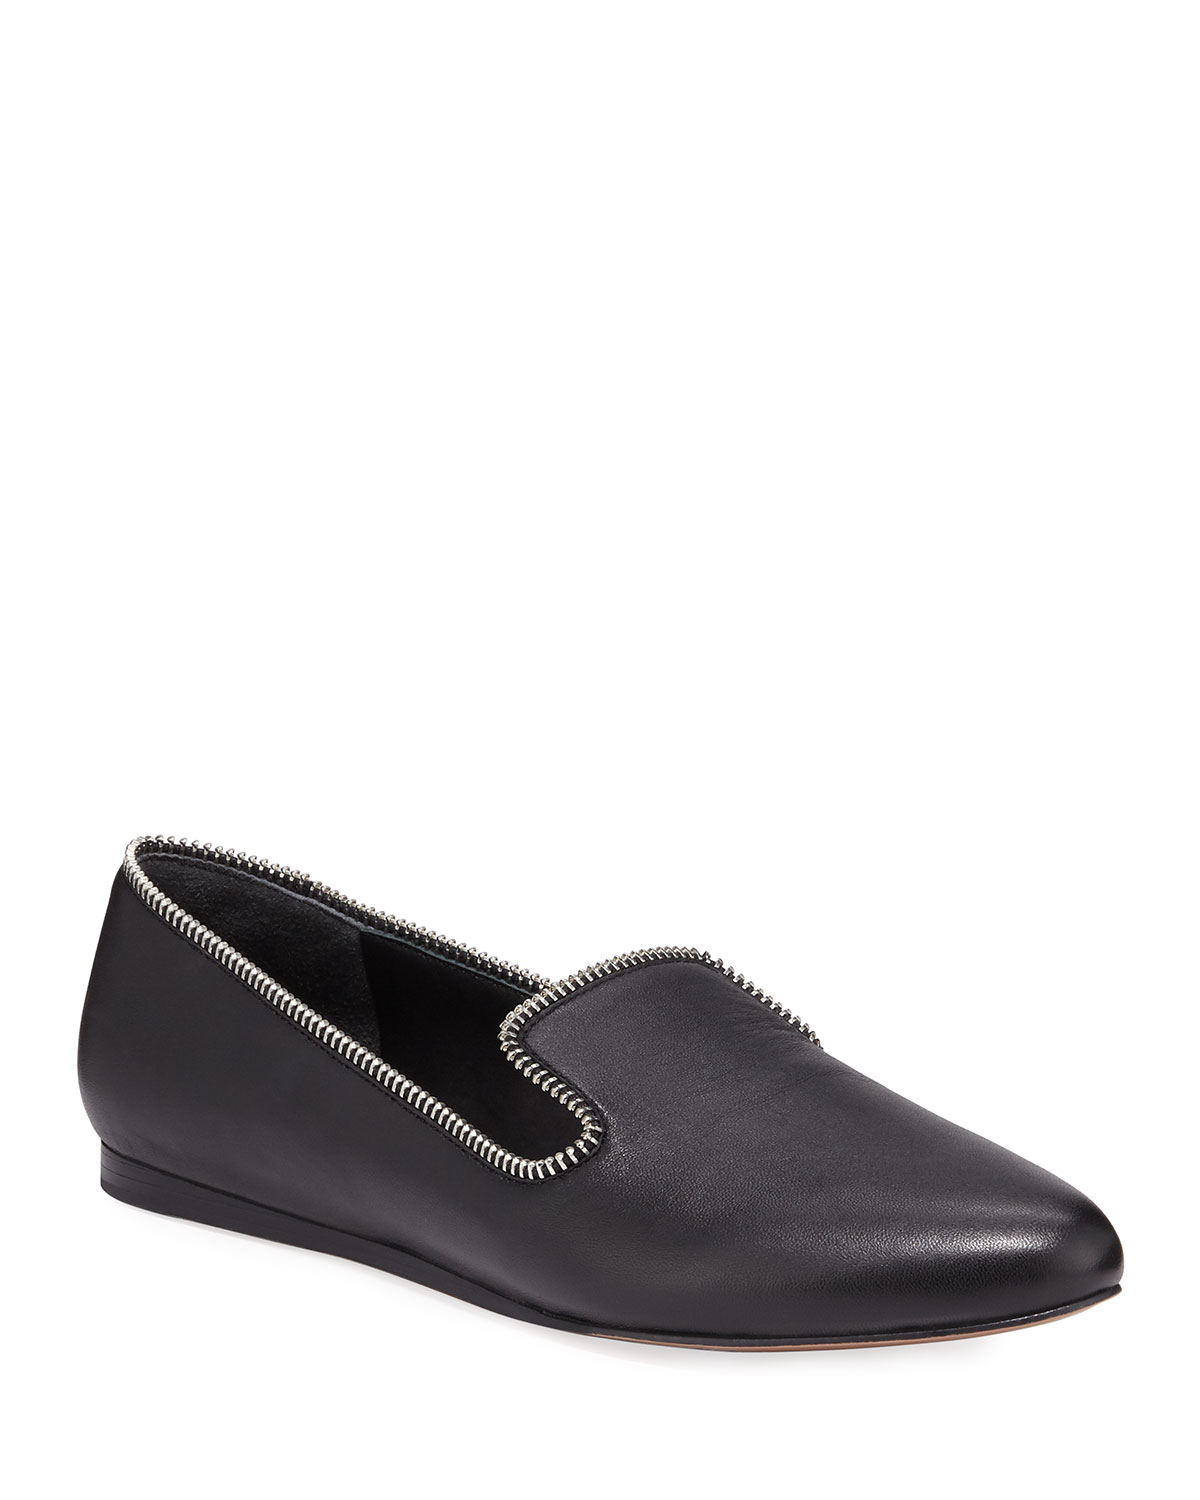 Griffin Flat Leather Loafers with Zipper Detail